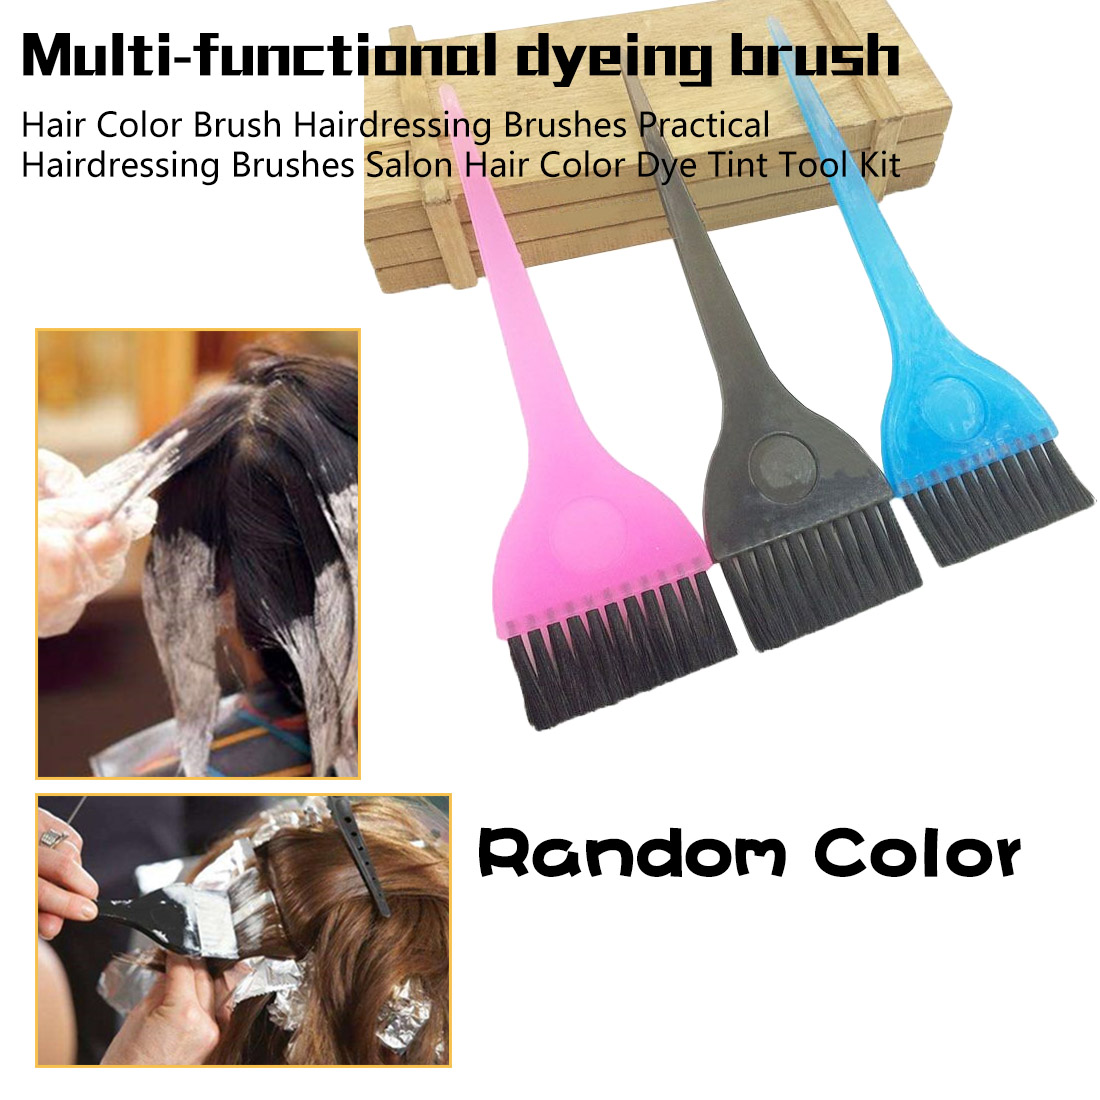 Plastic Hairdressing Brushes Salon Hair Color Dye Tint Tool Kit New Hair Brush Hair Accessories Drop Shipping